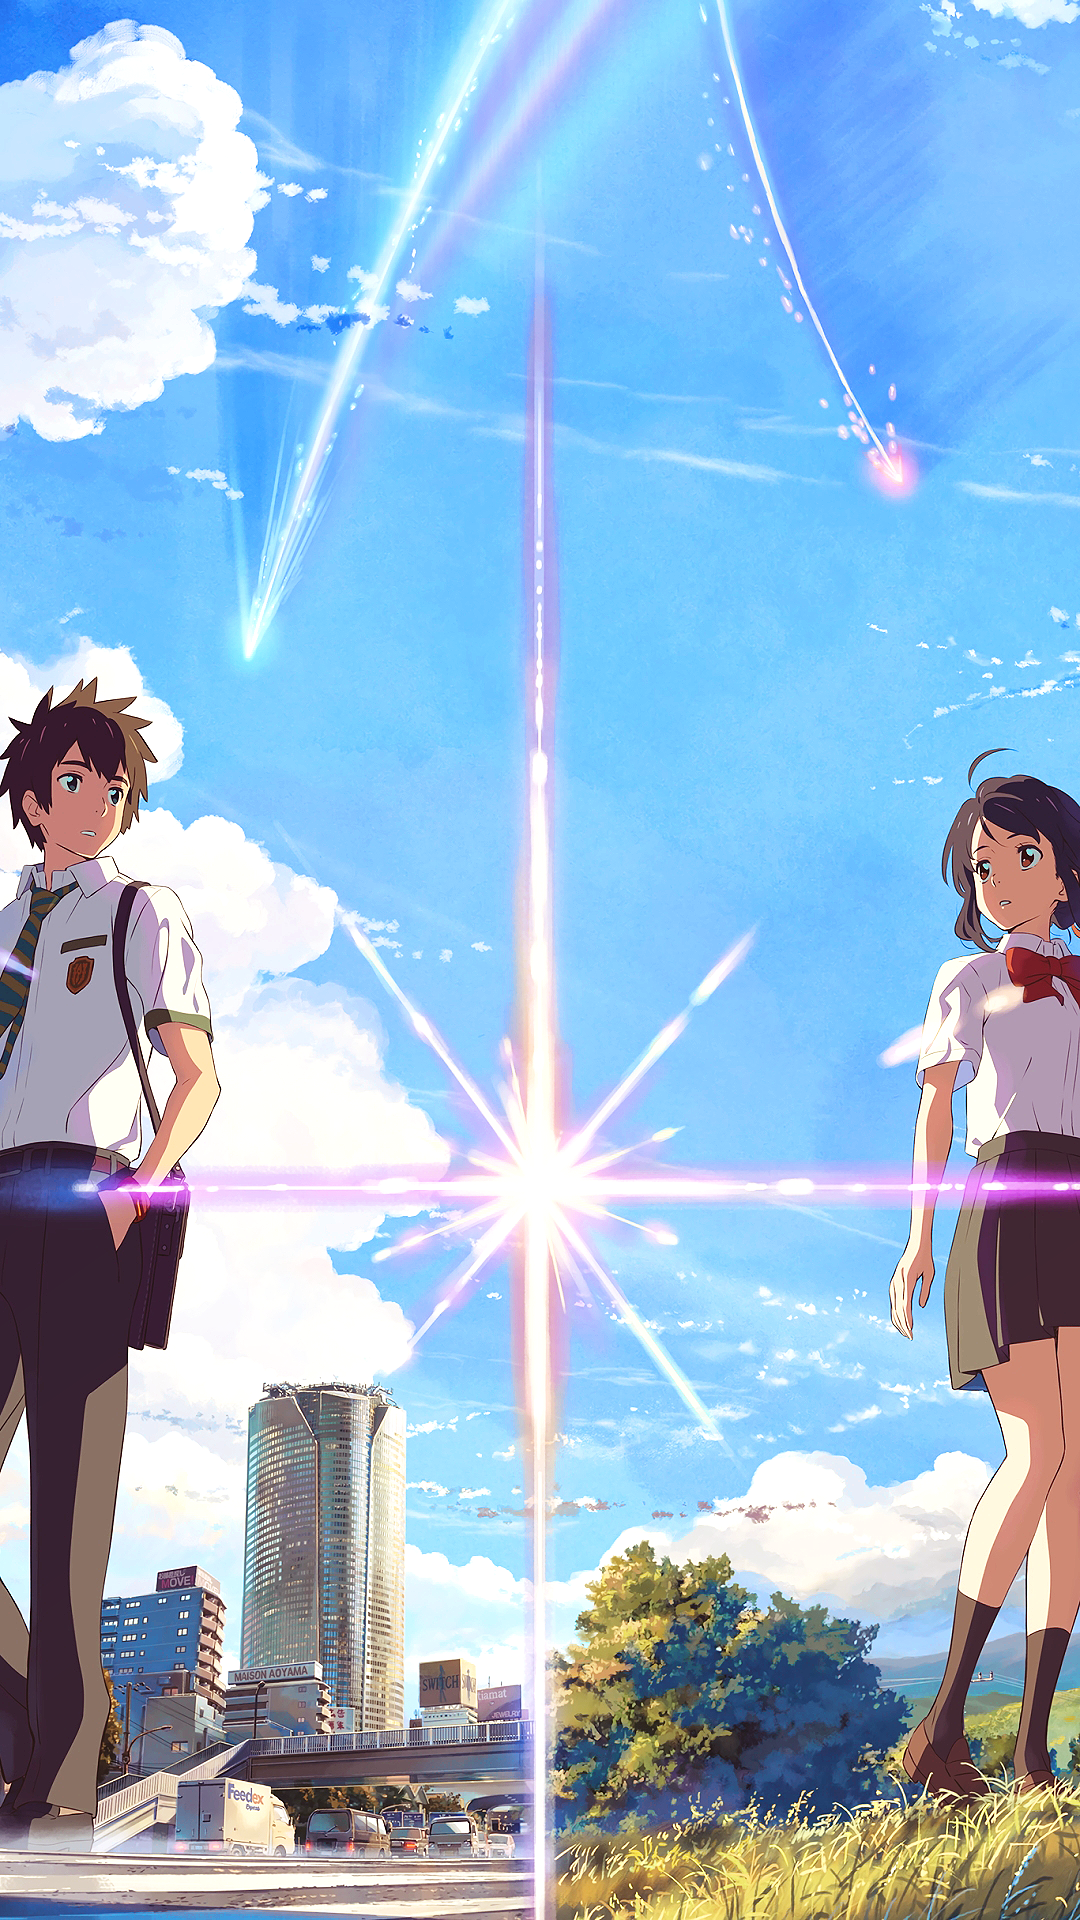 Download 58 Wallpaper Hd Anime Your Name Gratis Terbaru